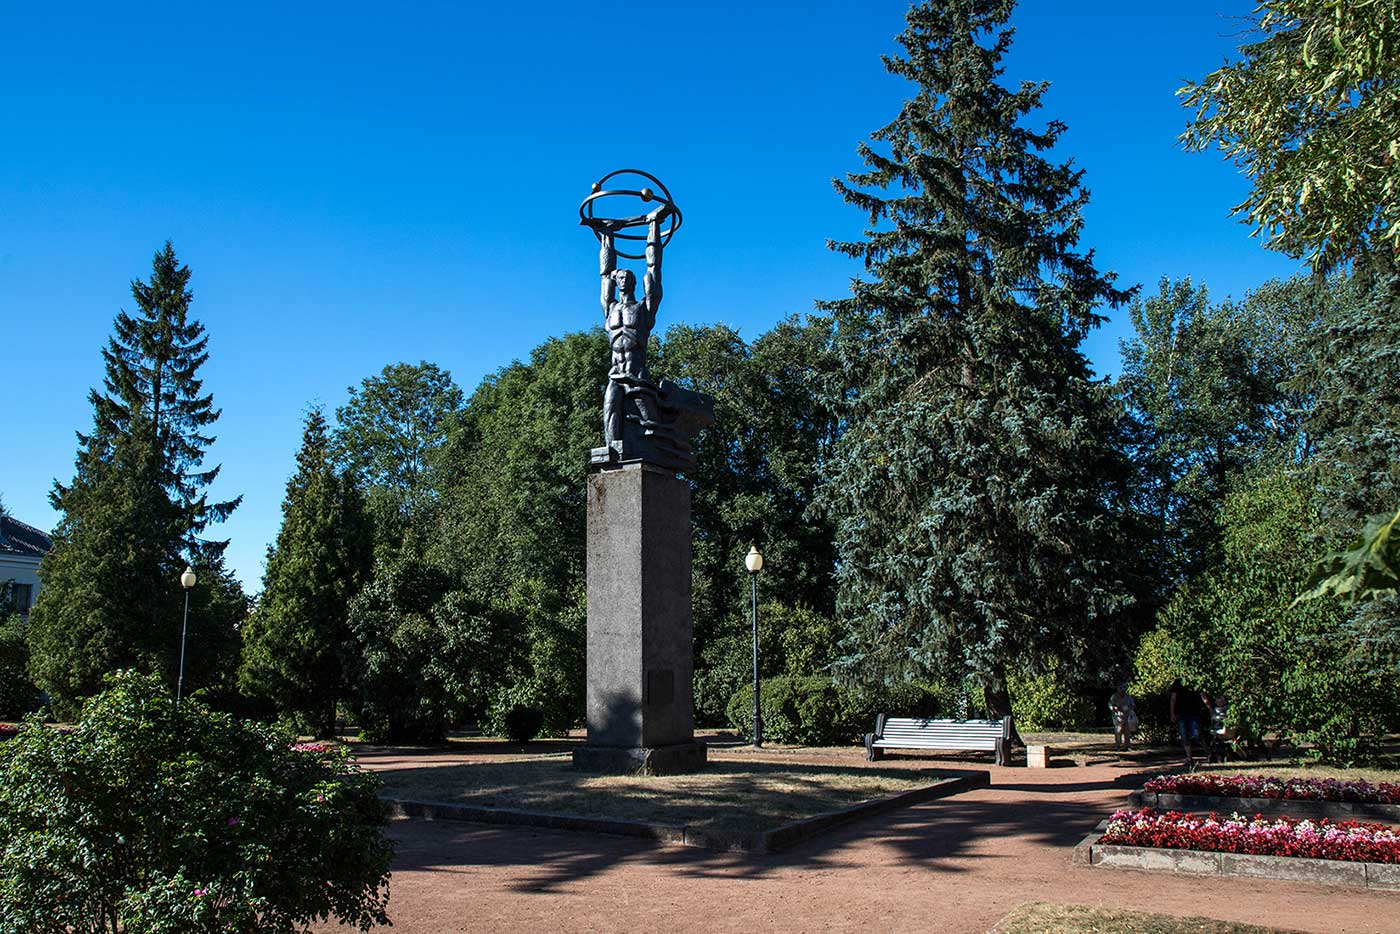 The new monument unveiled in 1987 depicts a superhuman form lifting an atom.